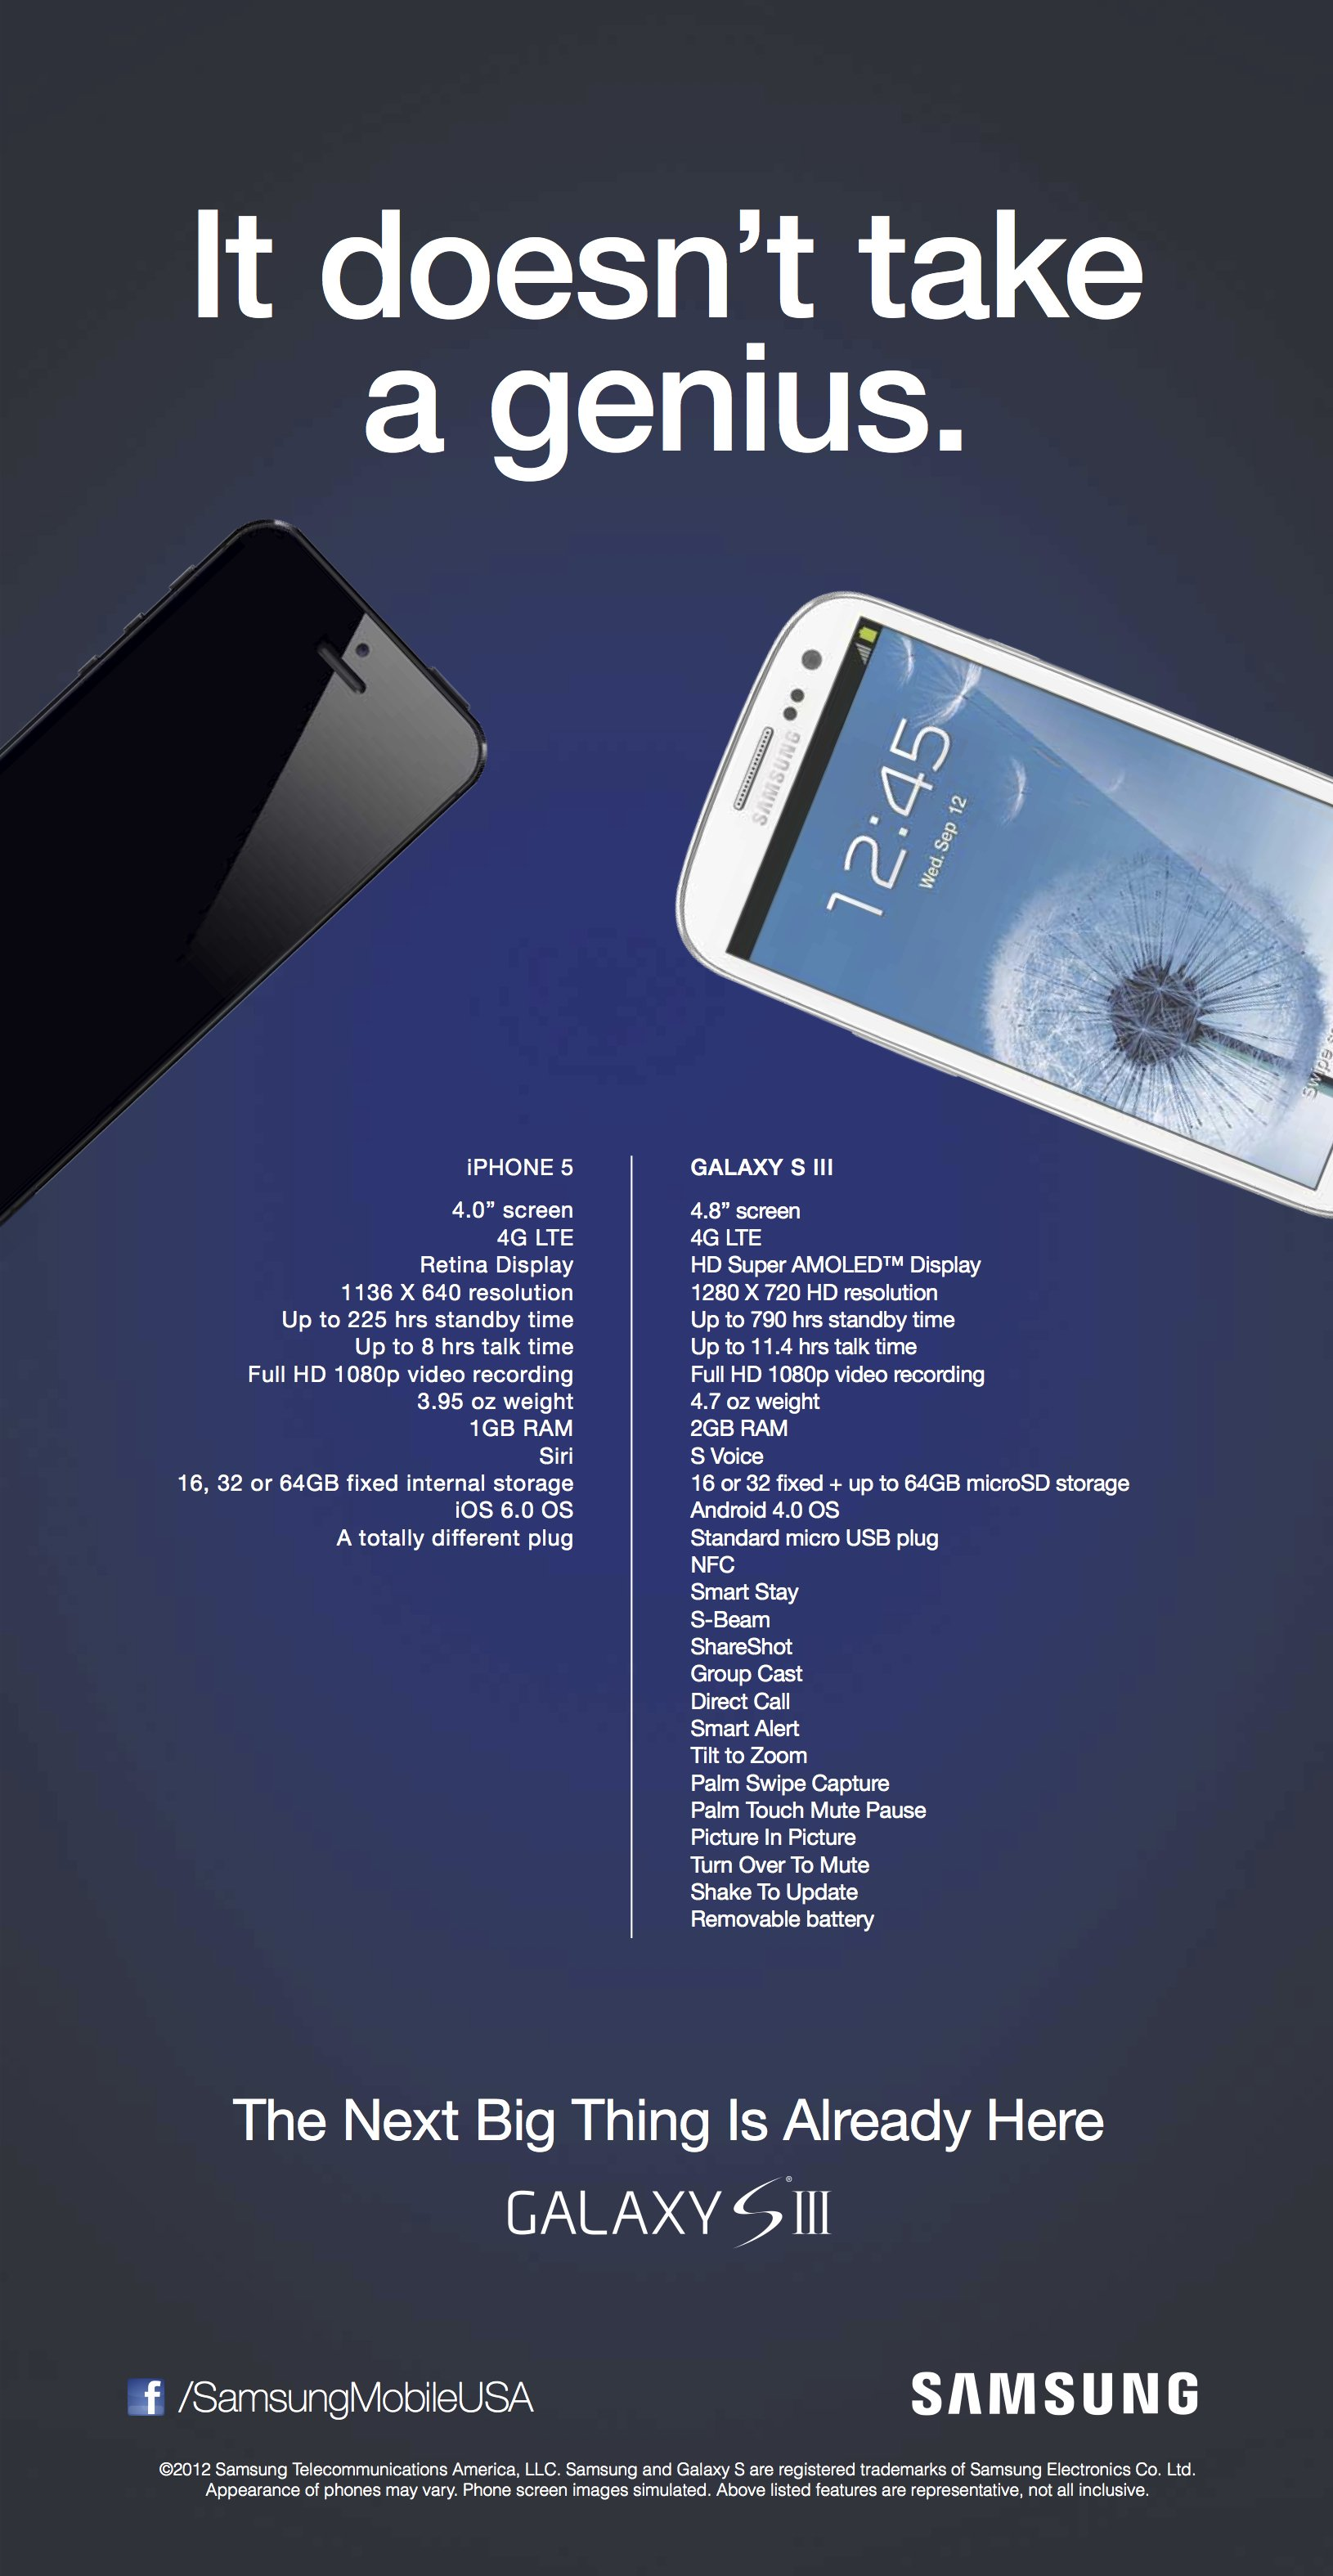 Samsung Anti Apple Ad